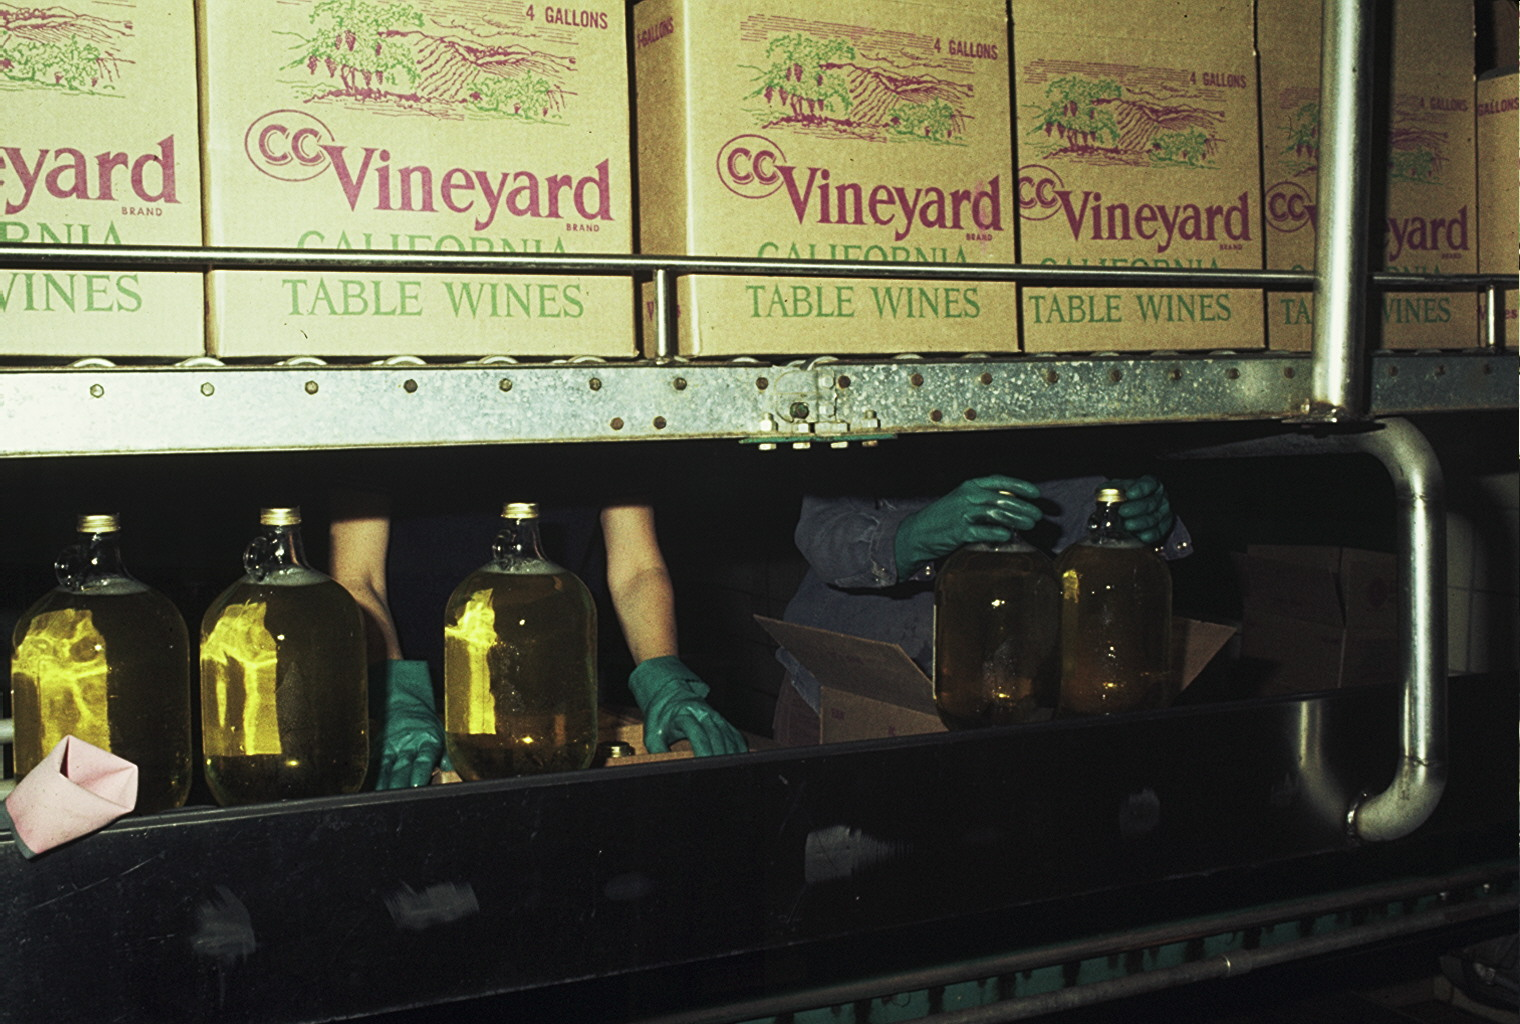 California Table Wines boxes and bottling